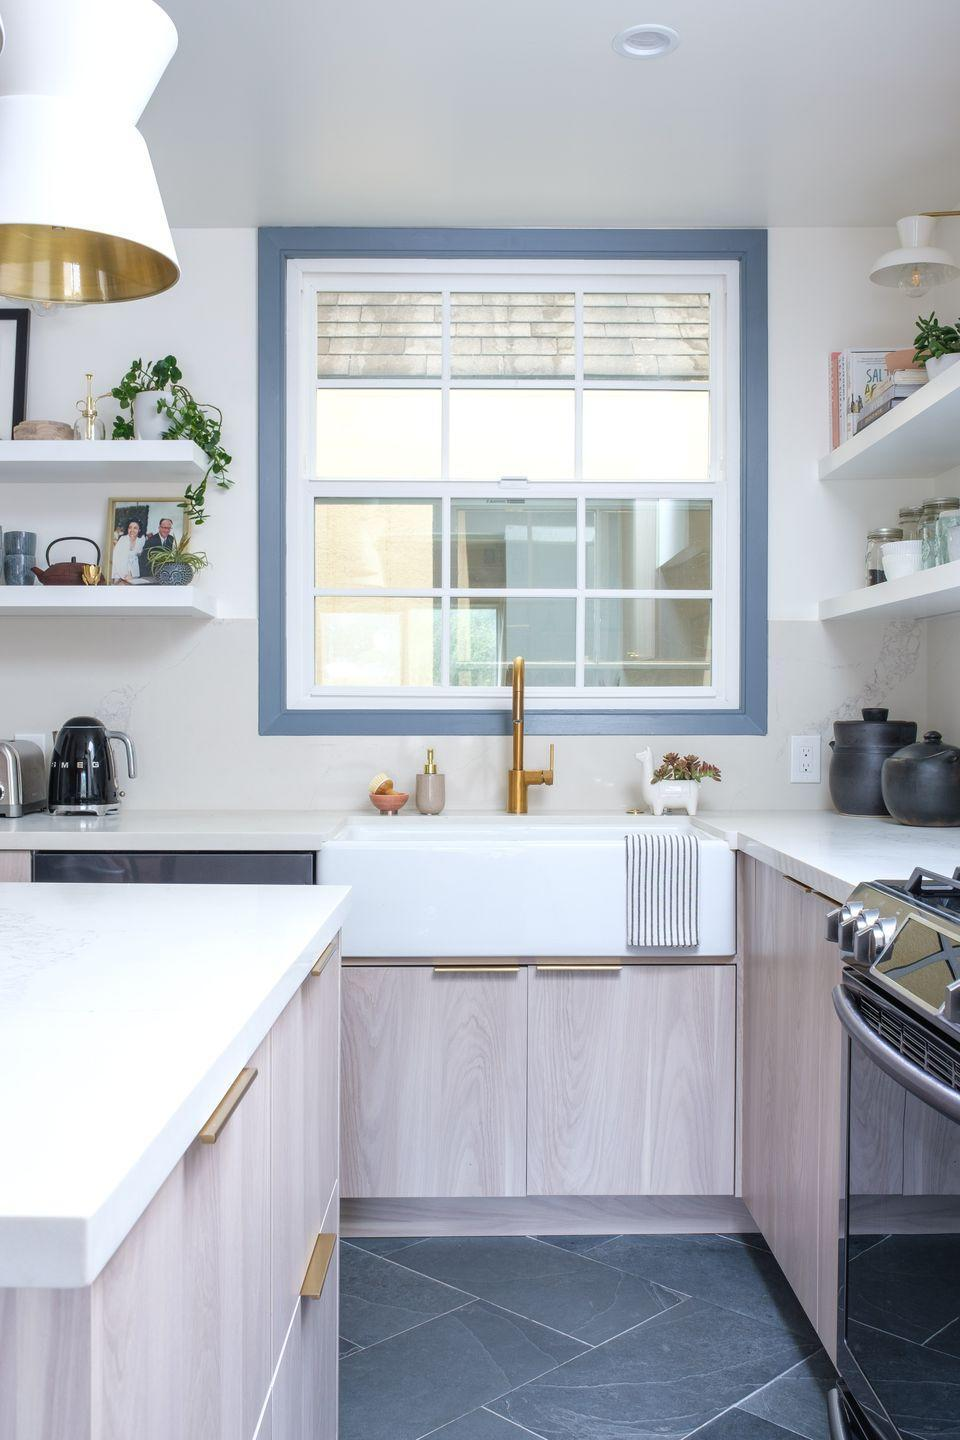 "<p>A wide blue border gives the main window in this San Francisco kitchen by <a href=""https://ginarachelledesign.com/"" rel=""nofollow noopener"" target=""_blank"" data-ylk=""slk:Gina Rachelle Design"" class=""link rapid-noclick-resp"">Gina Rachelle Design</a> a distinctive look. The IKEA cabinetry is paired with open shelving and cabinet fronts from the beloved brand <a href=""https://www.semihandmade.com/"" rel=""nofollow noopener"" target=""_blank"" data-ylk=""slk:Semihandmade"" class=""link rapid-noclick-resp"">Semihandmade</a>. </p>"